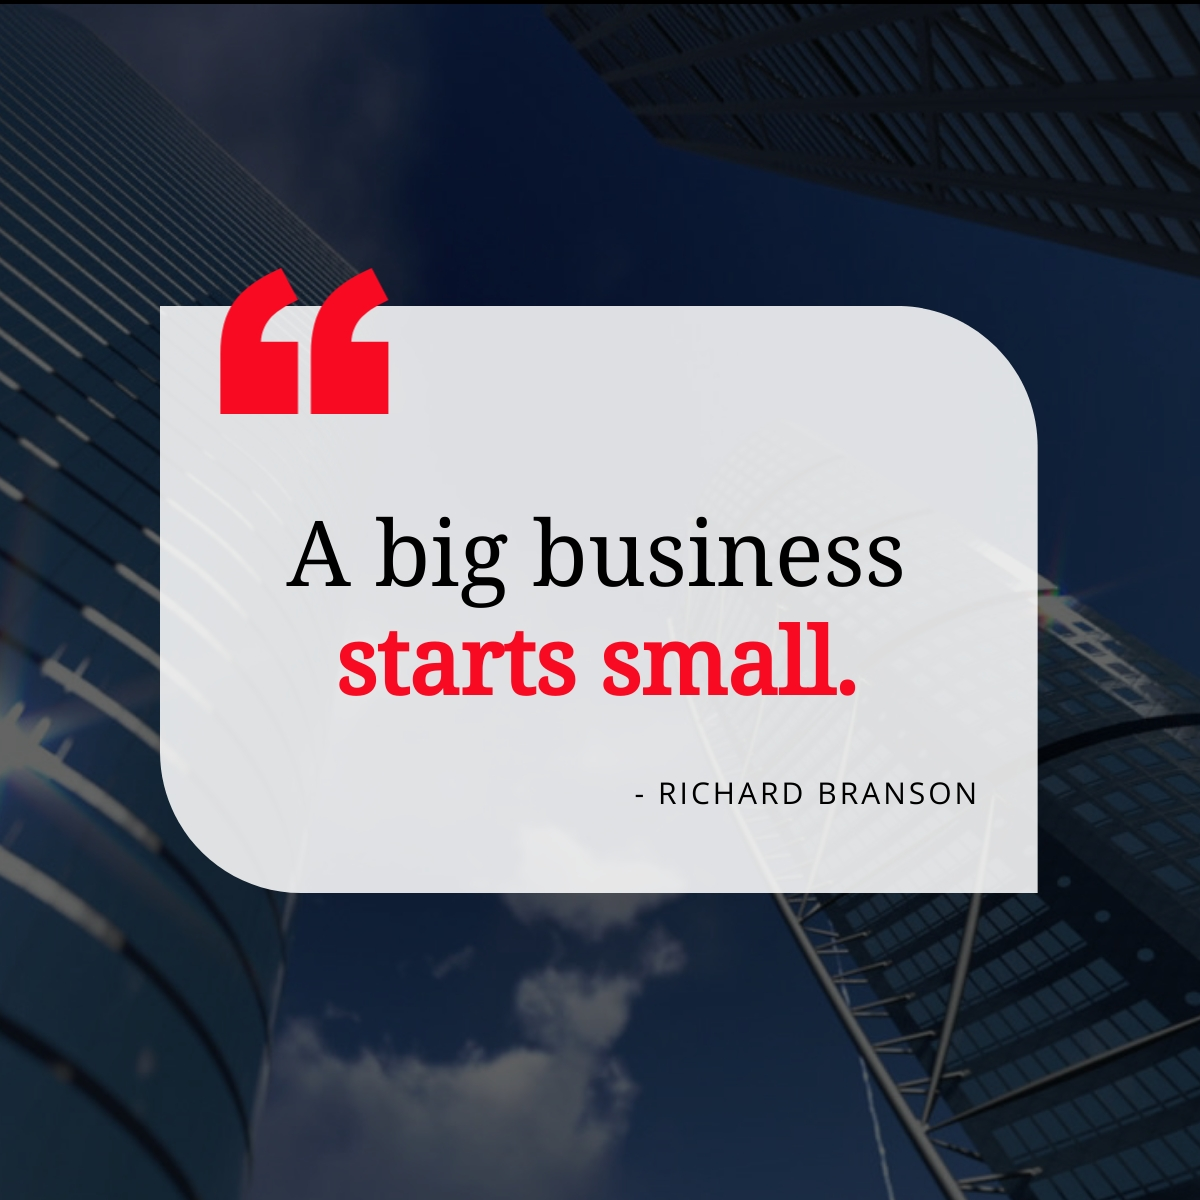 """A big business starts small"" - @richardbranson    #quote #quotesoftheday #quotesdaily #inspiration #quotestagram #quotesaboutlife"